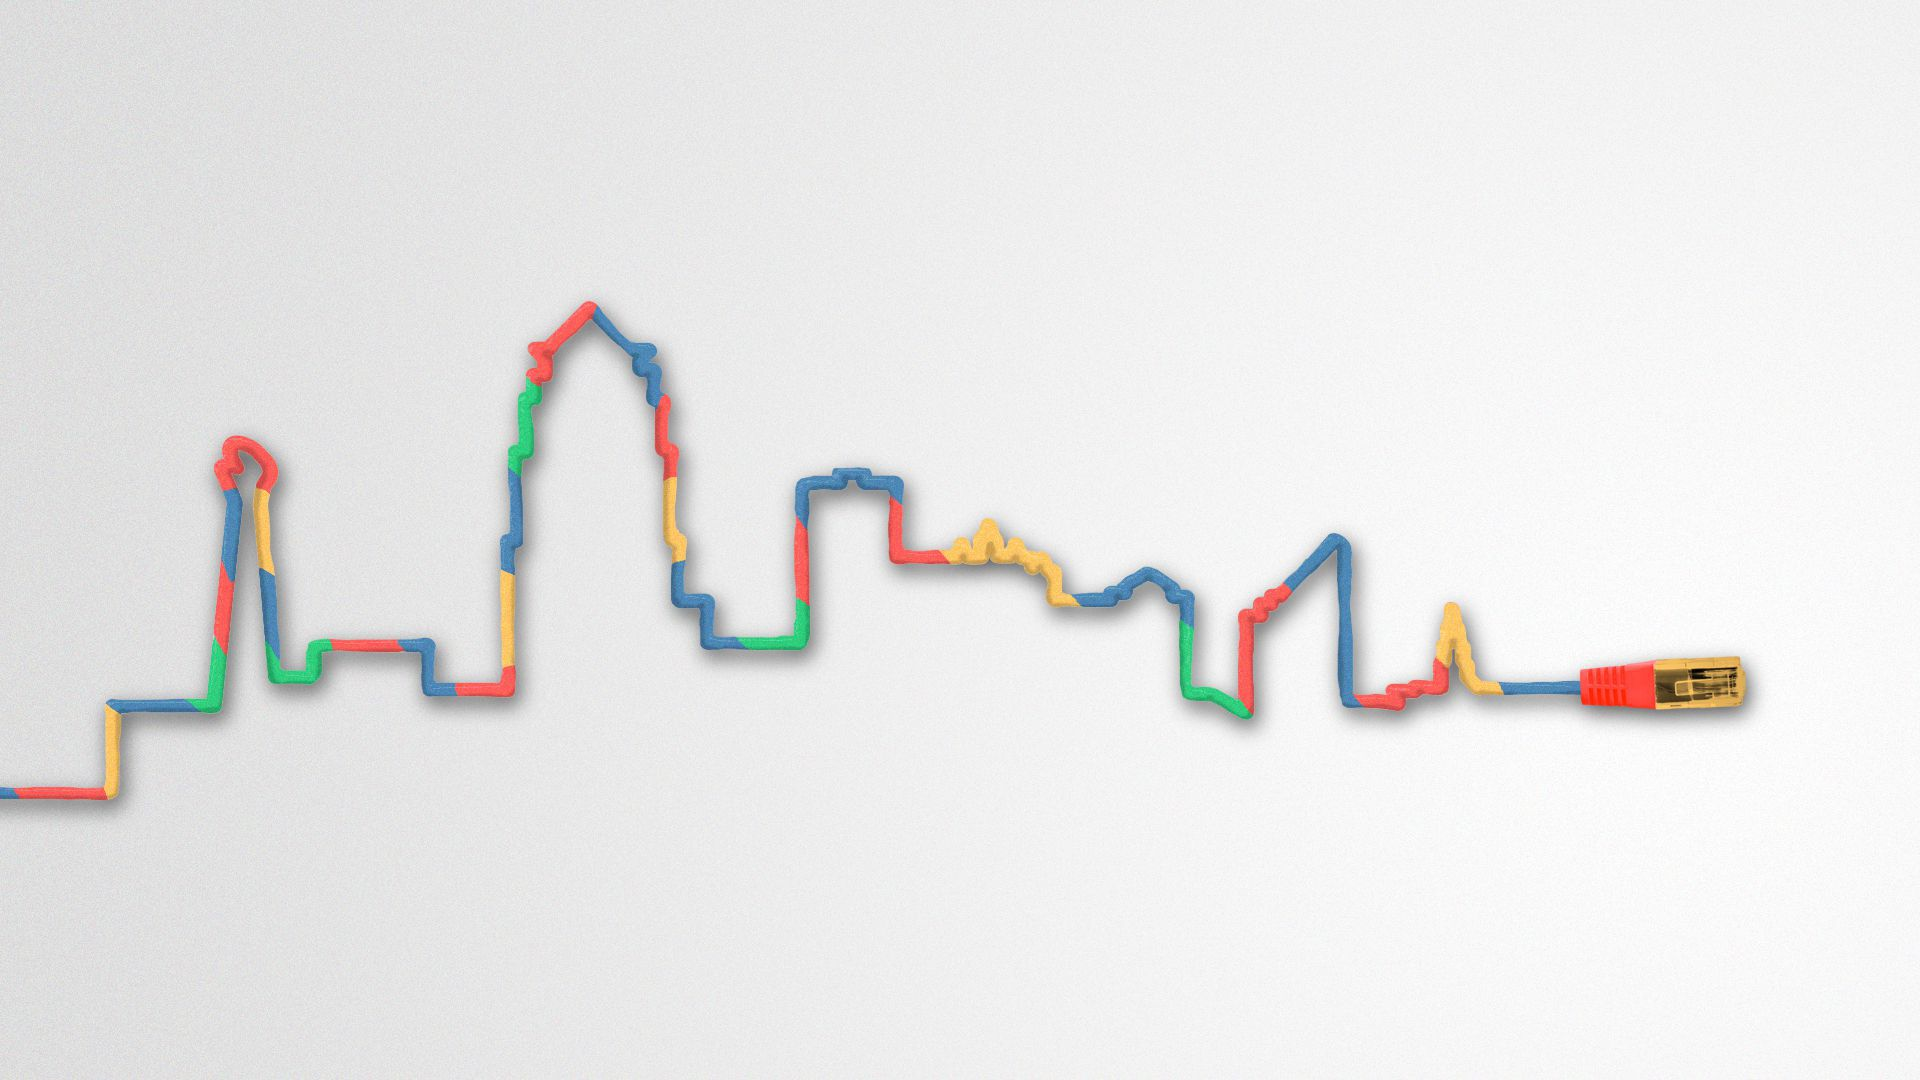 Illustration of an internet cable tracing the shape of the Des Moines skyline.